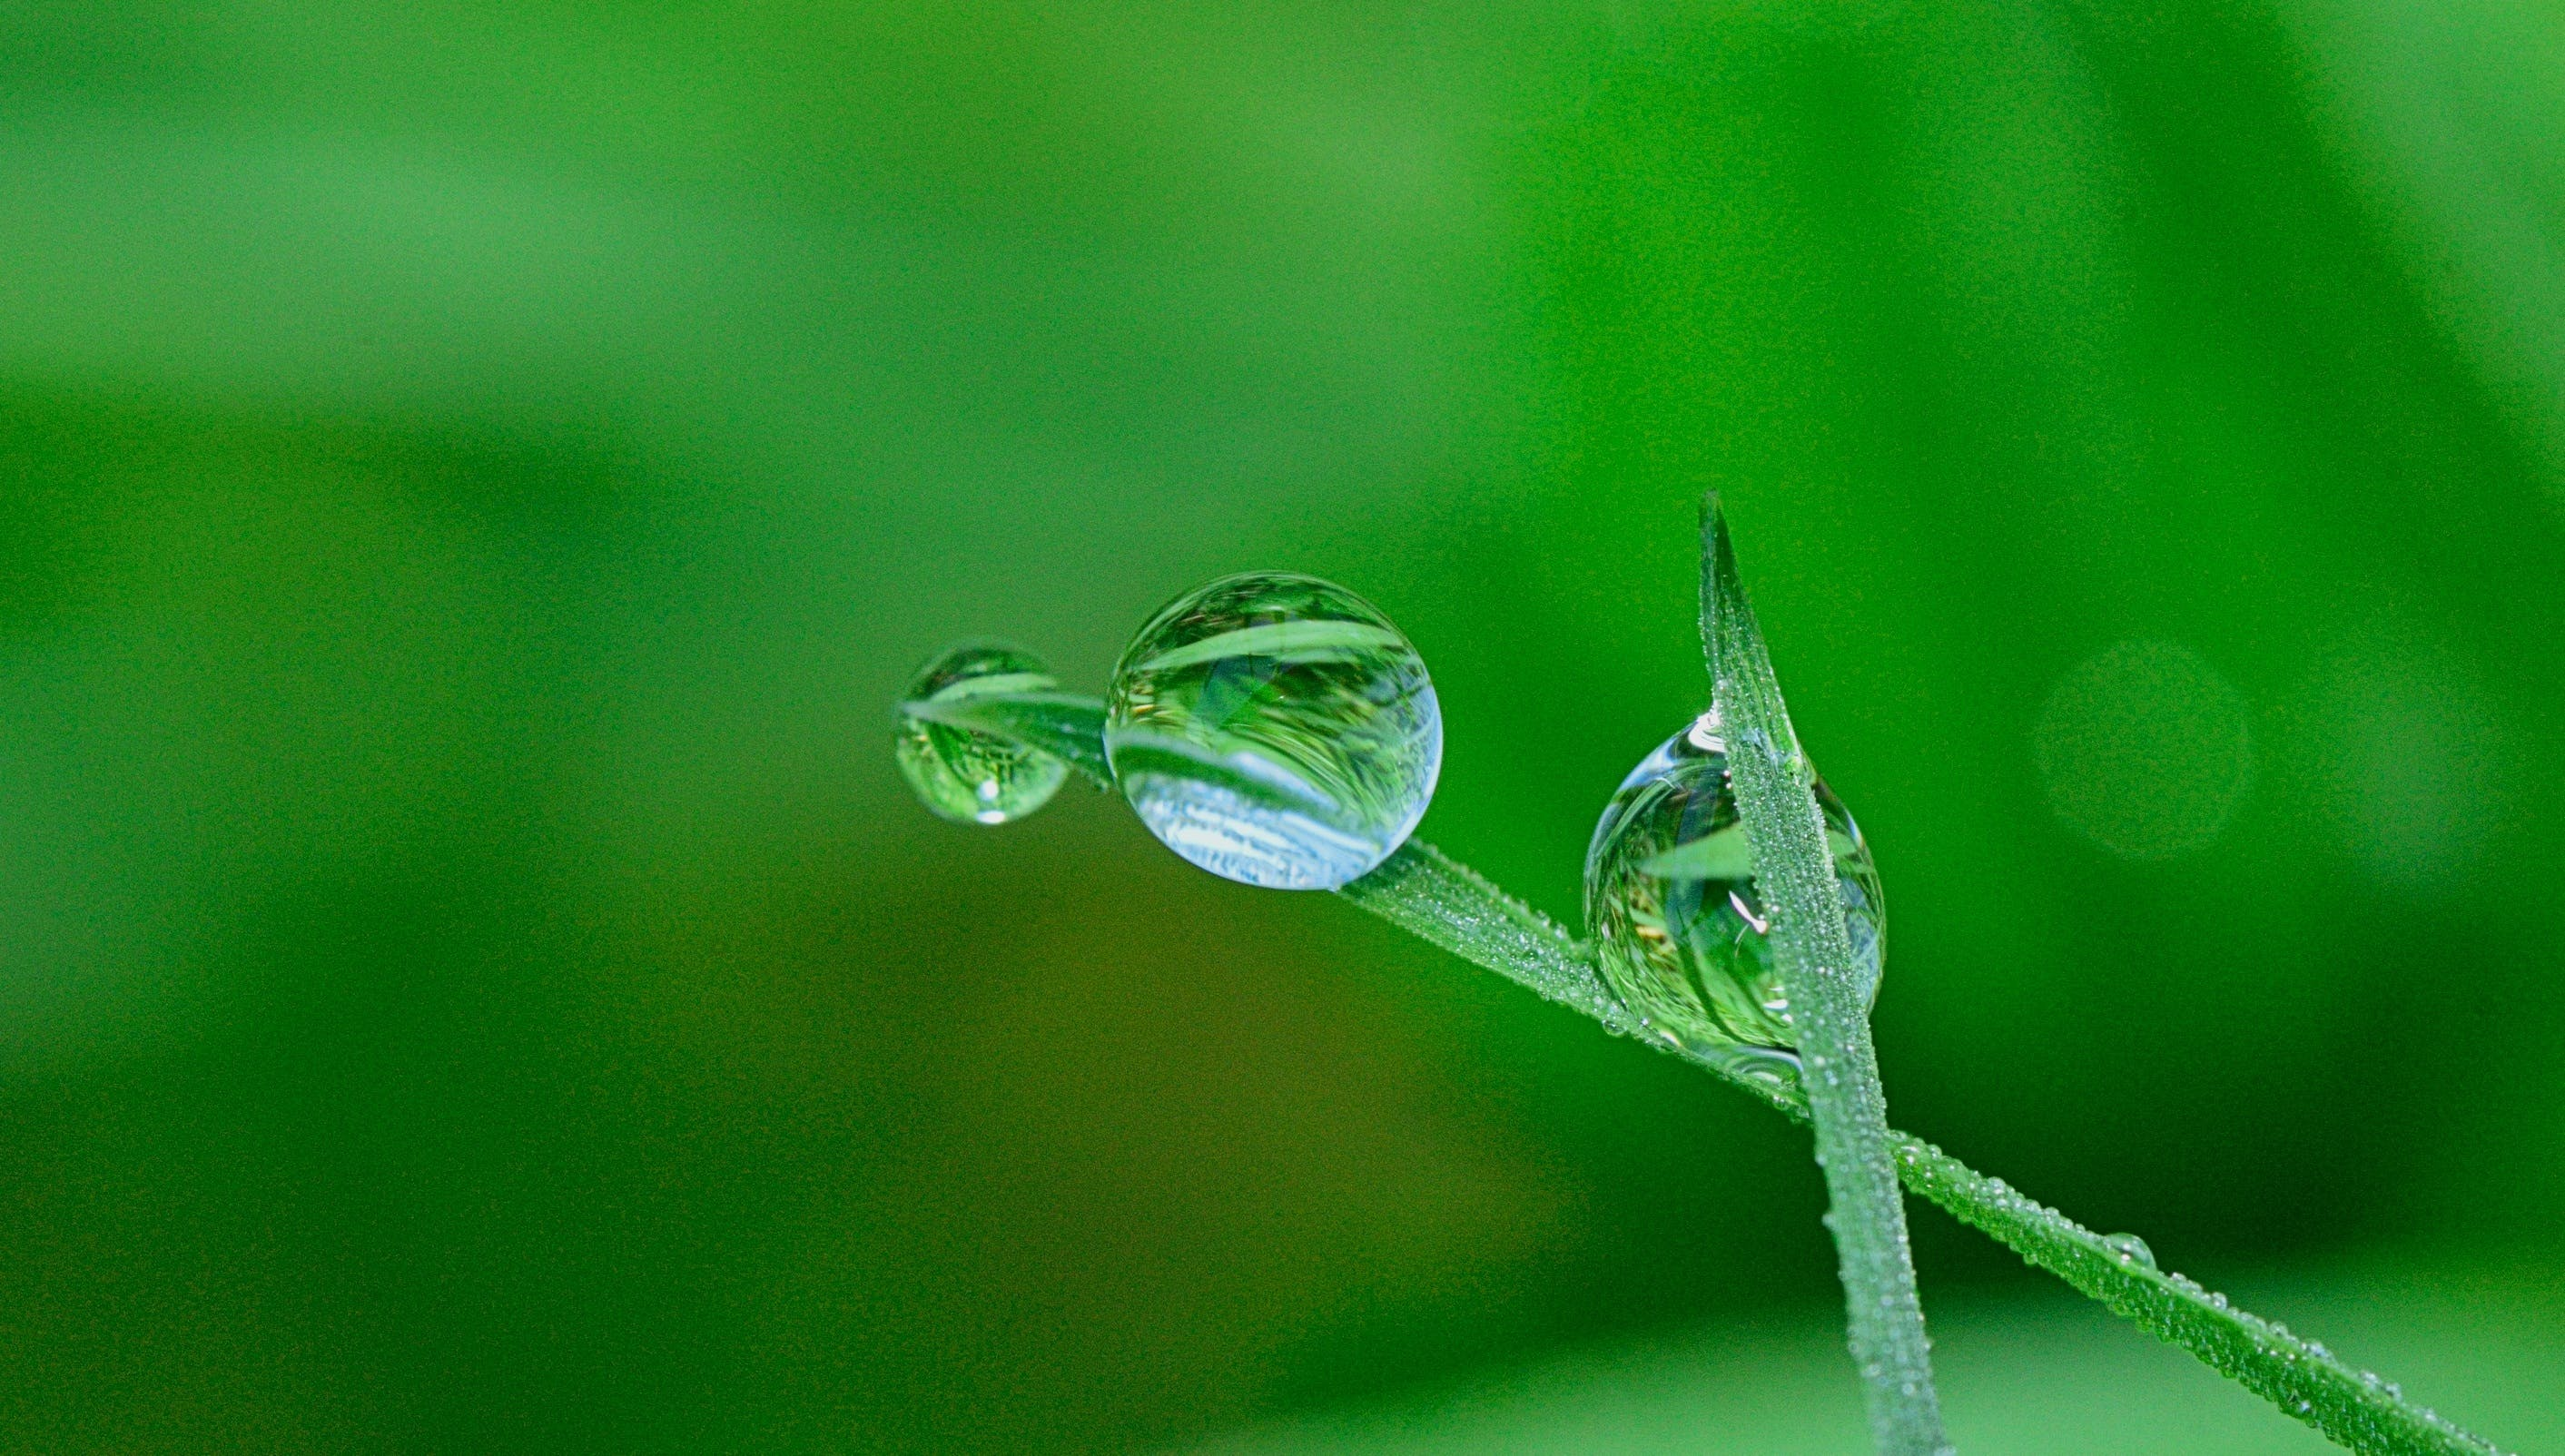 clear, close-up, dew